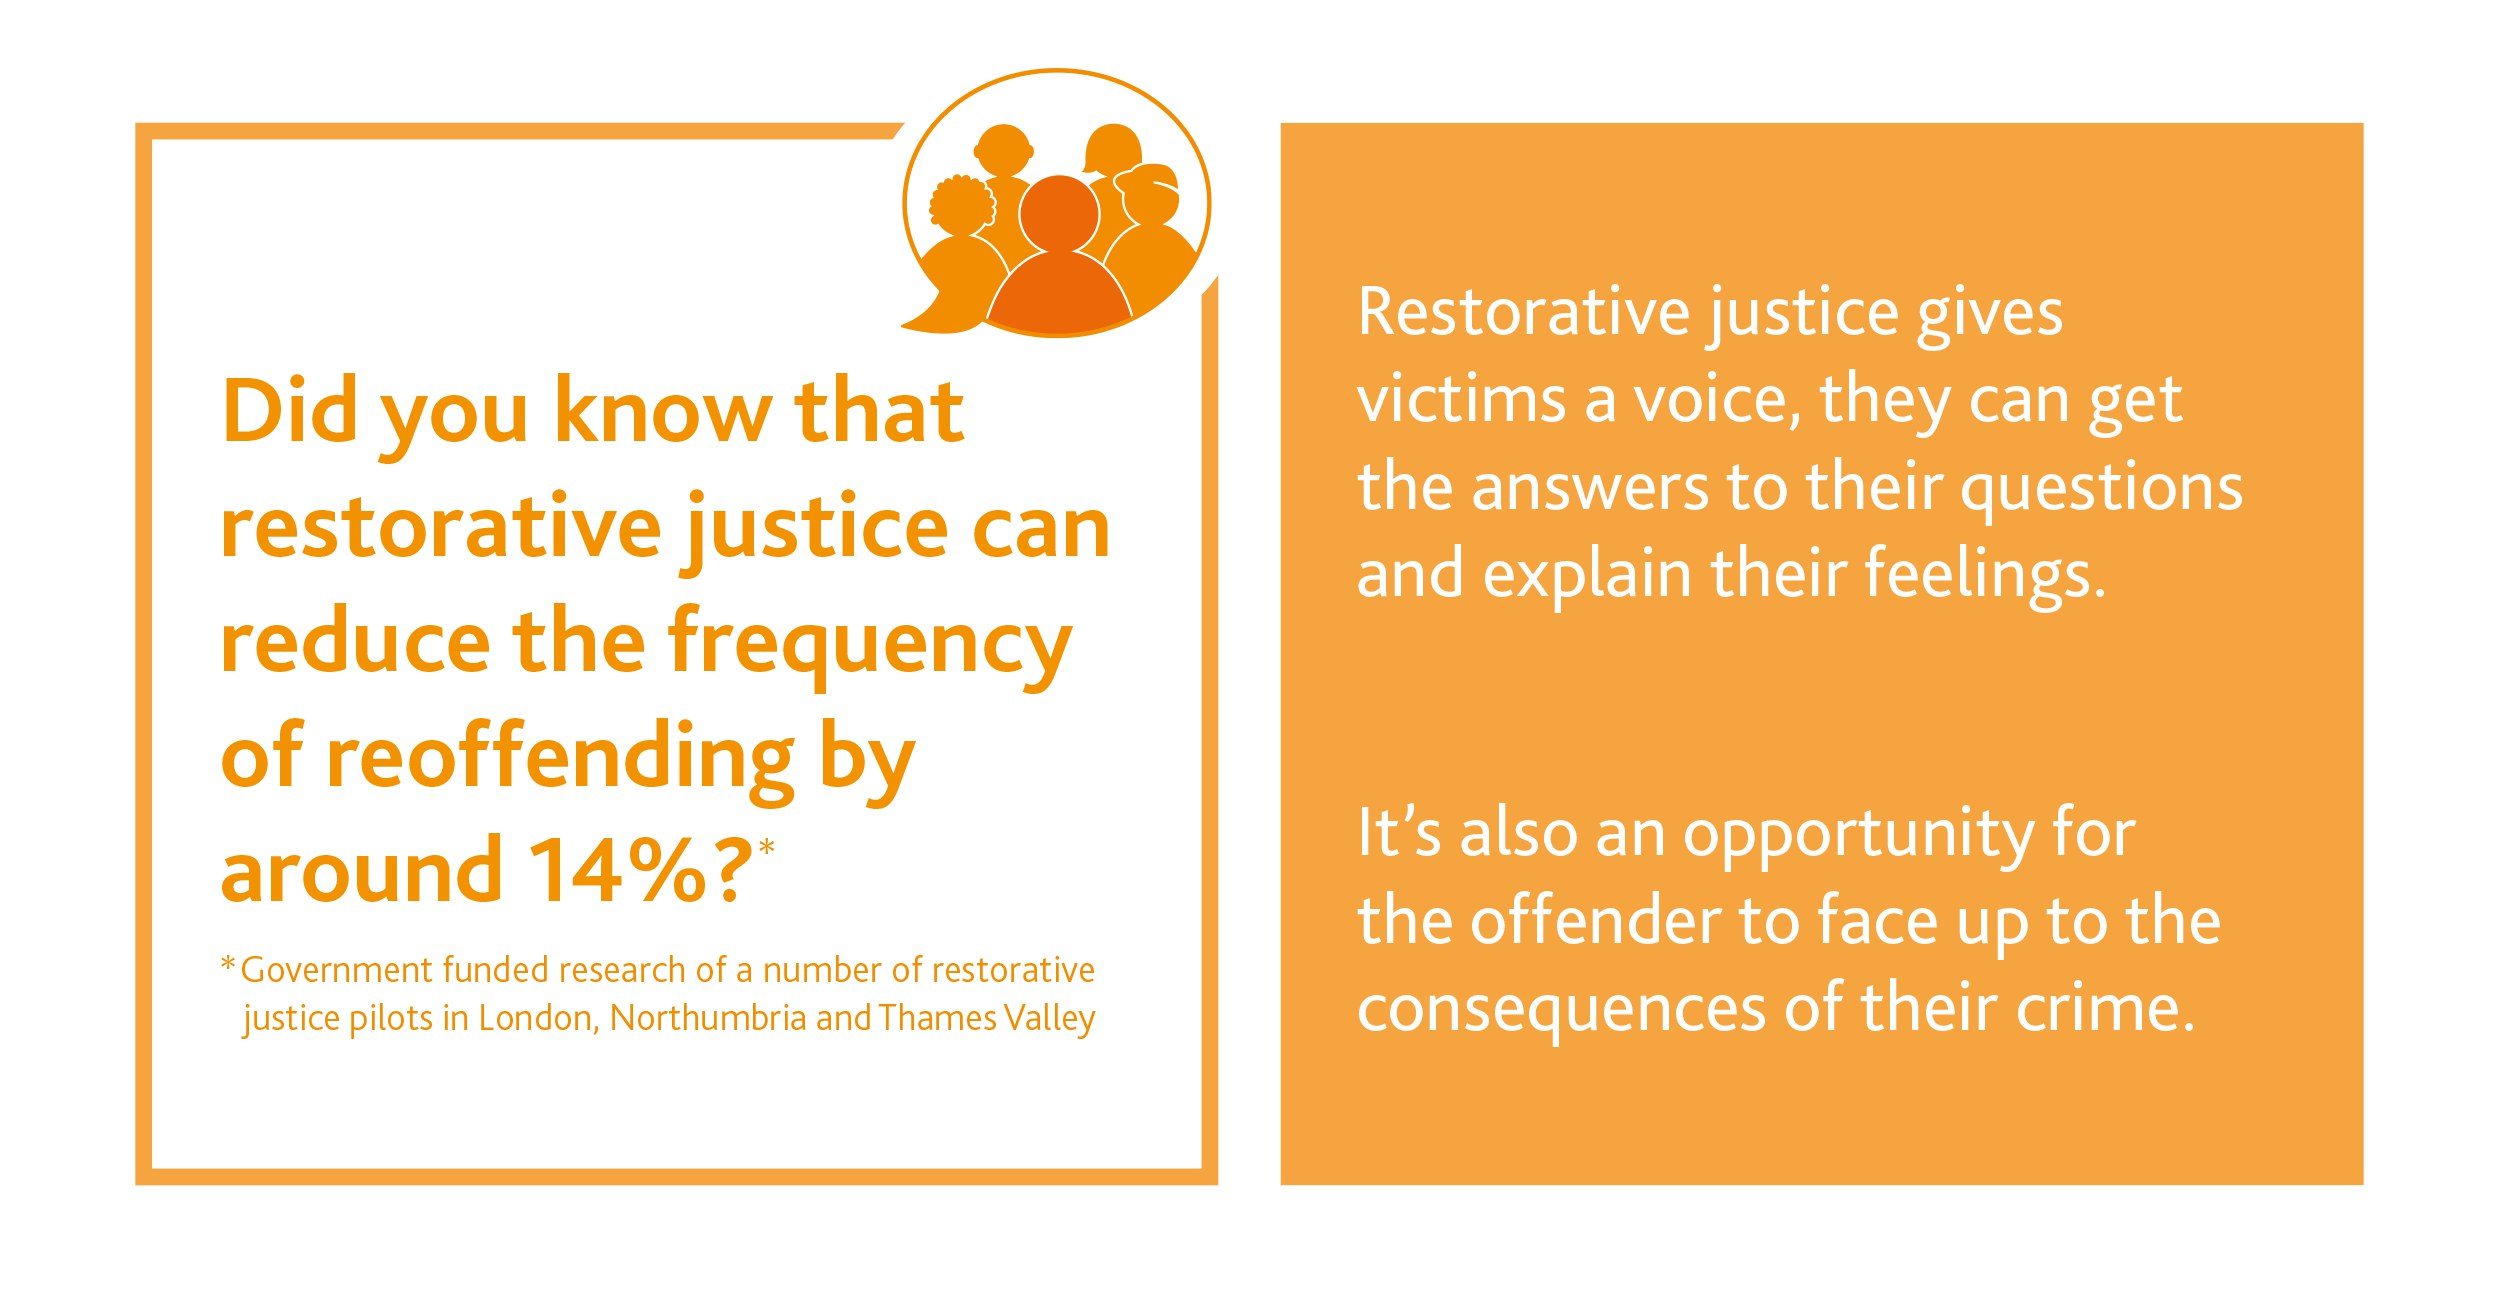 restorative justice Restorative justice in alaska the mission of the division of juvenile justice is to hold juvenile offenders accountable for their behavior, promote the safety and restoration of victims and communities, and assist offenders and their families in developing skills to prevent crime.